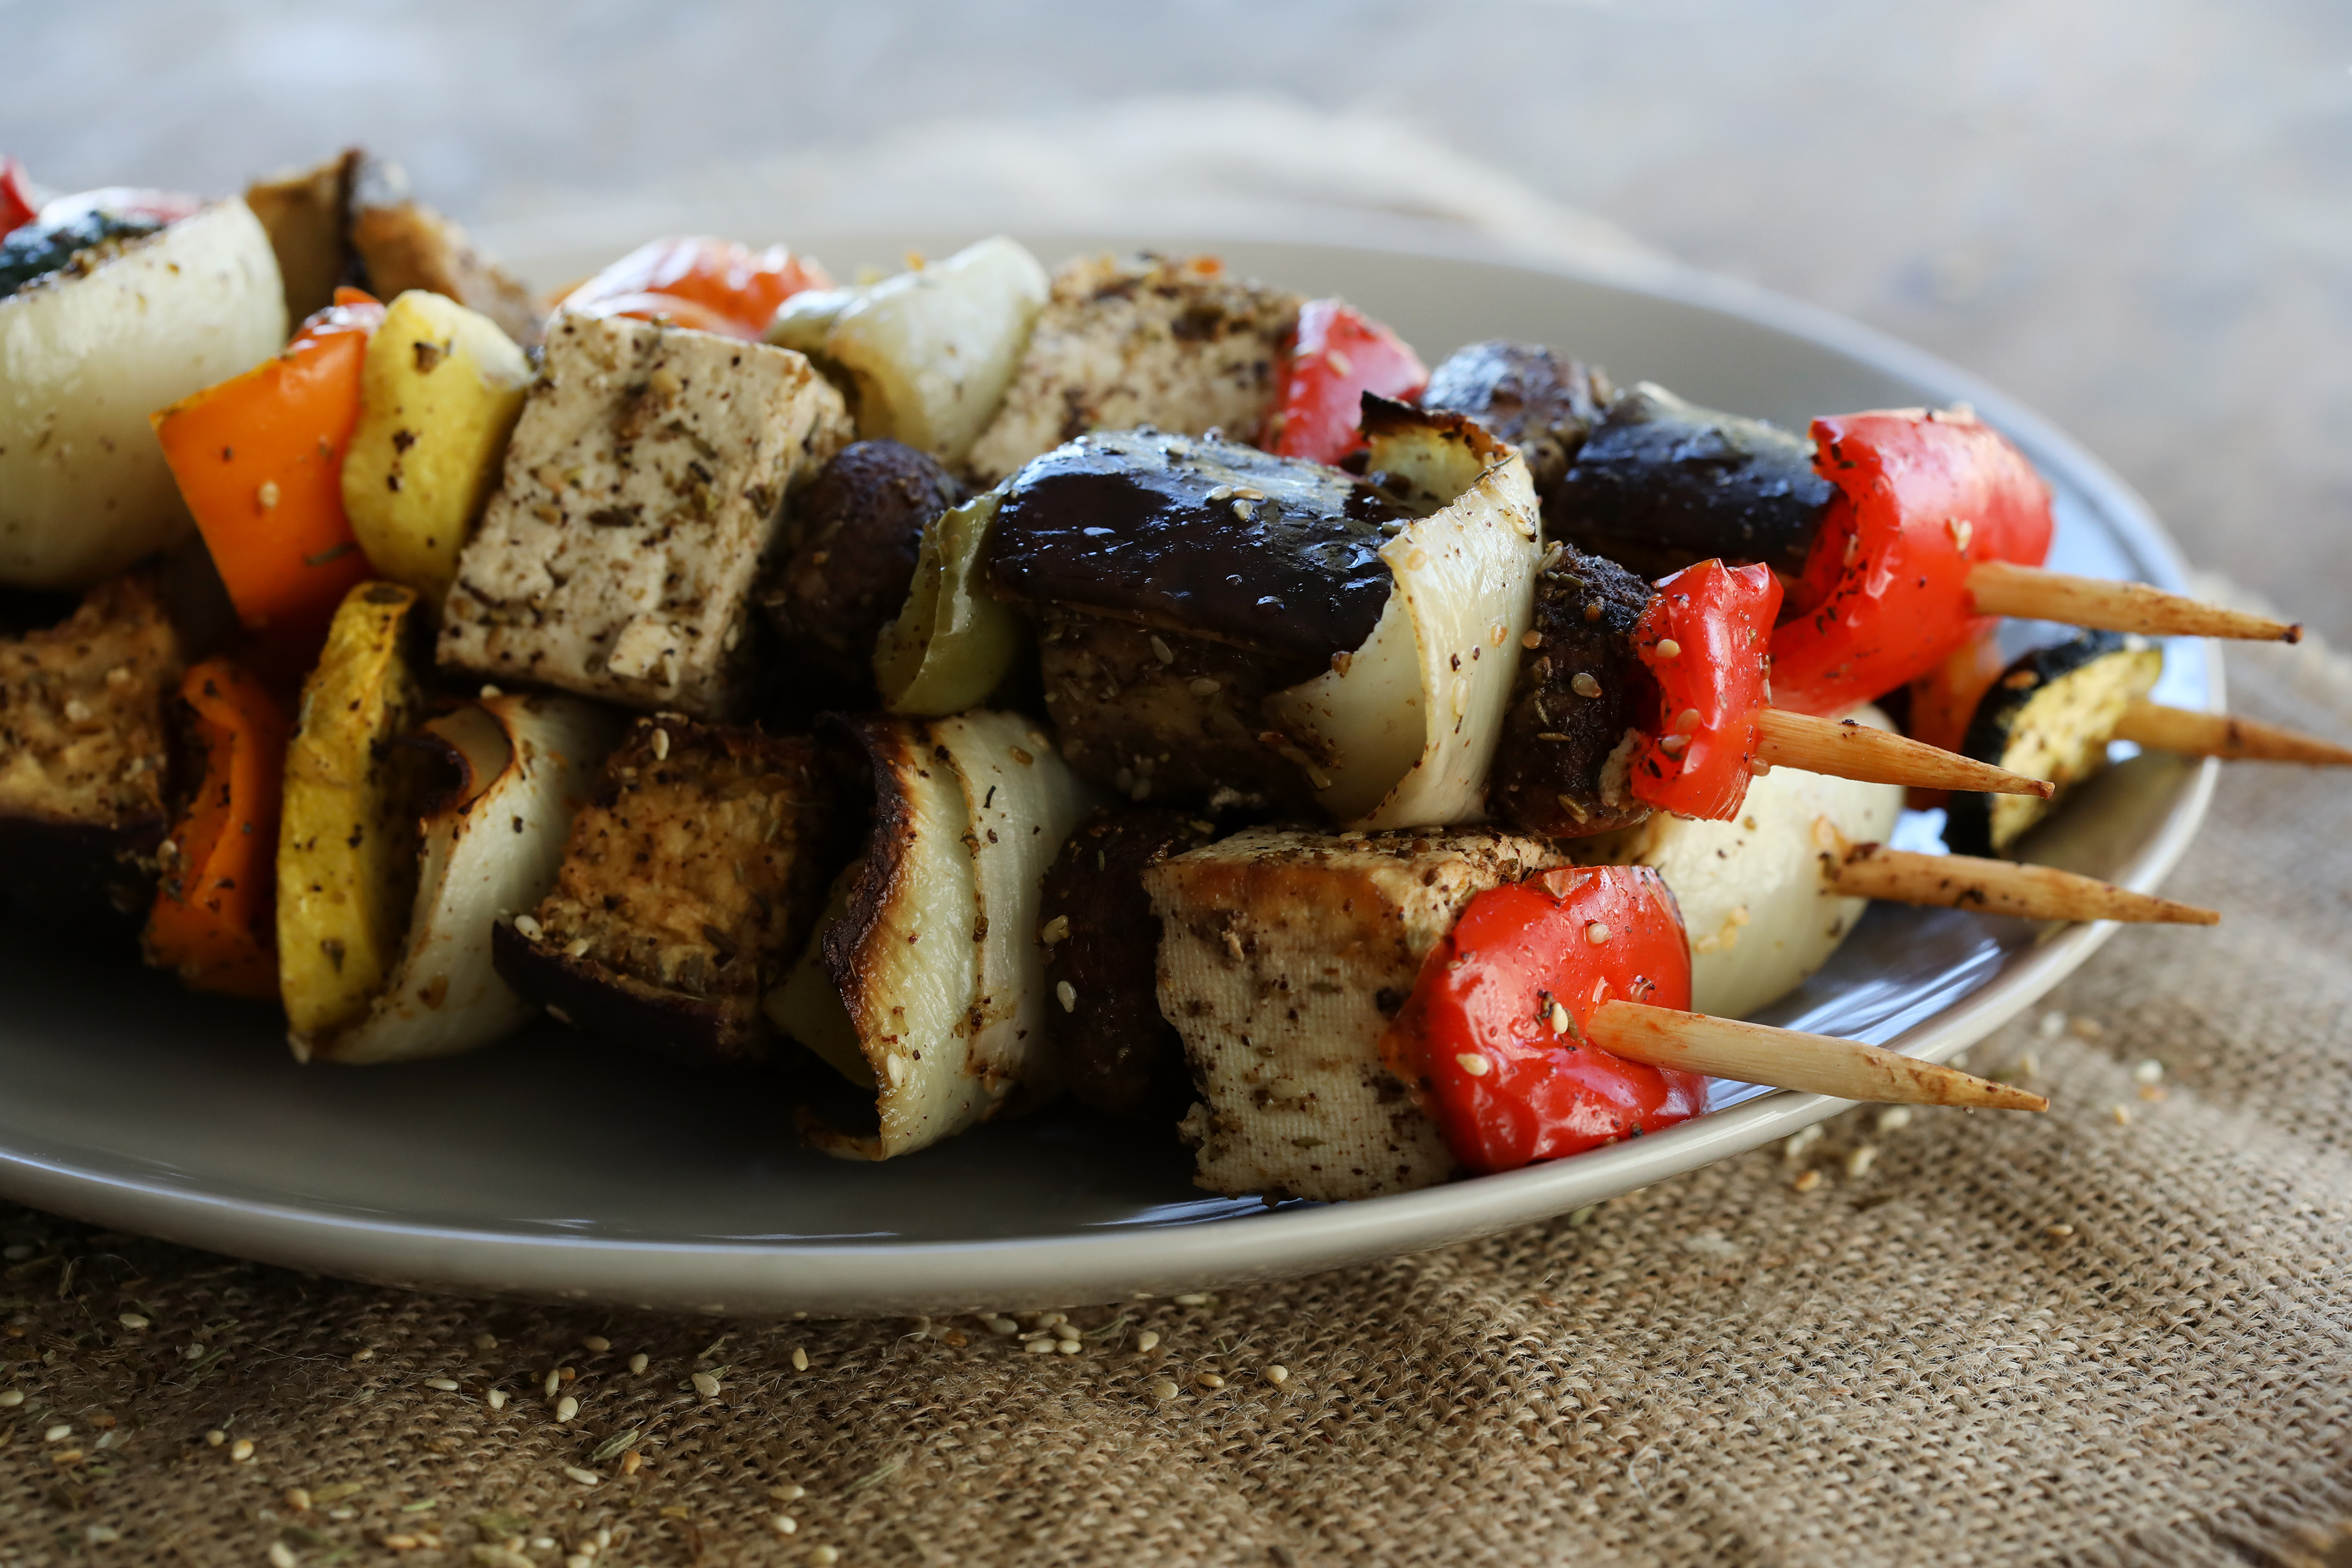 Grilled vegetable kebabs with peppers, zucchini, eggplant, and onion, resting on a plate